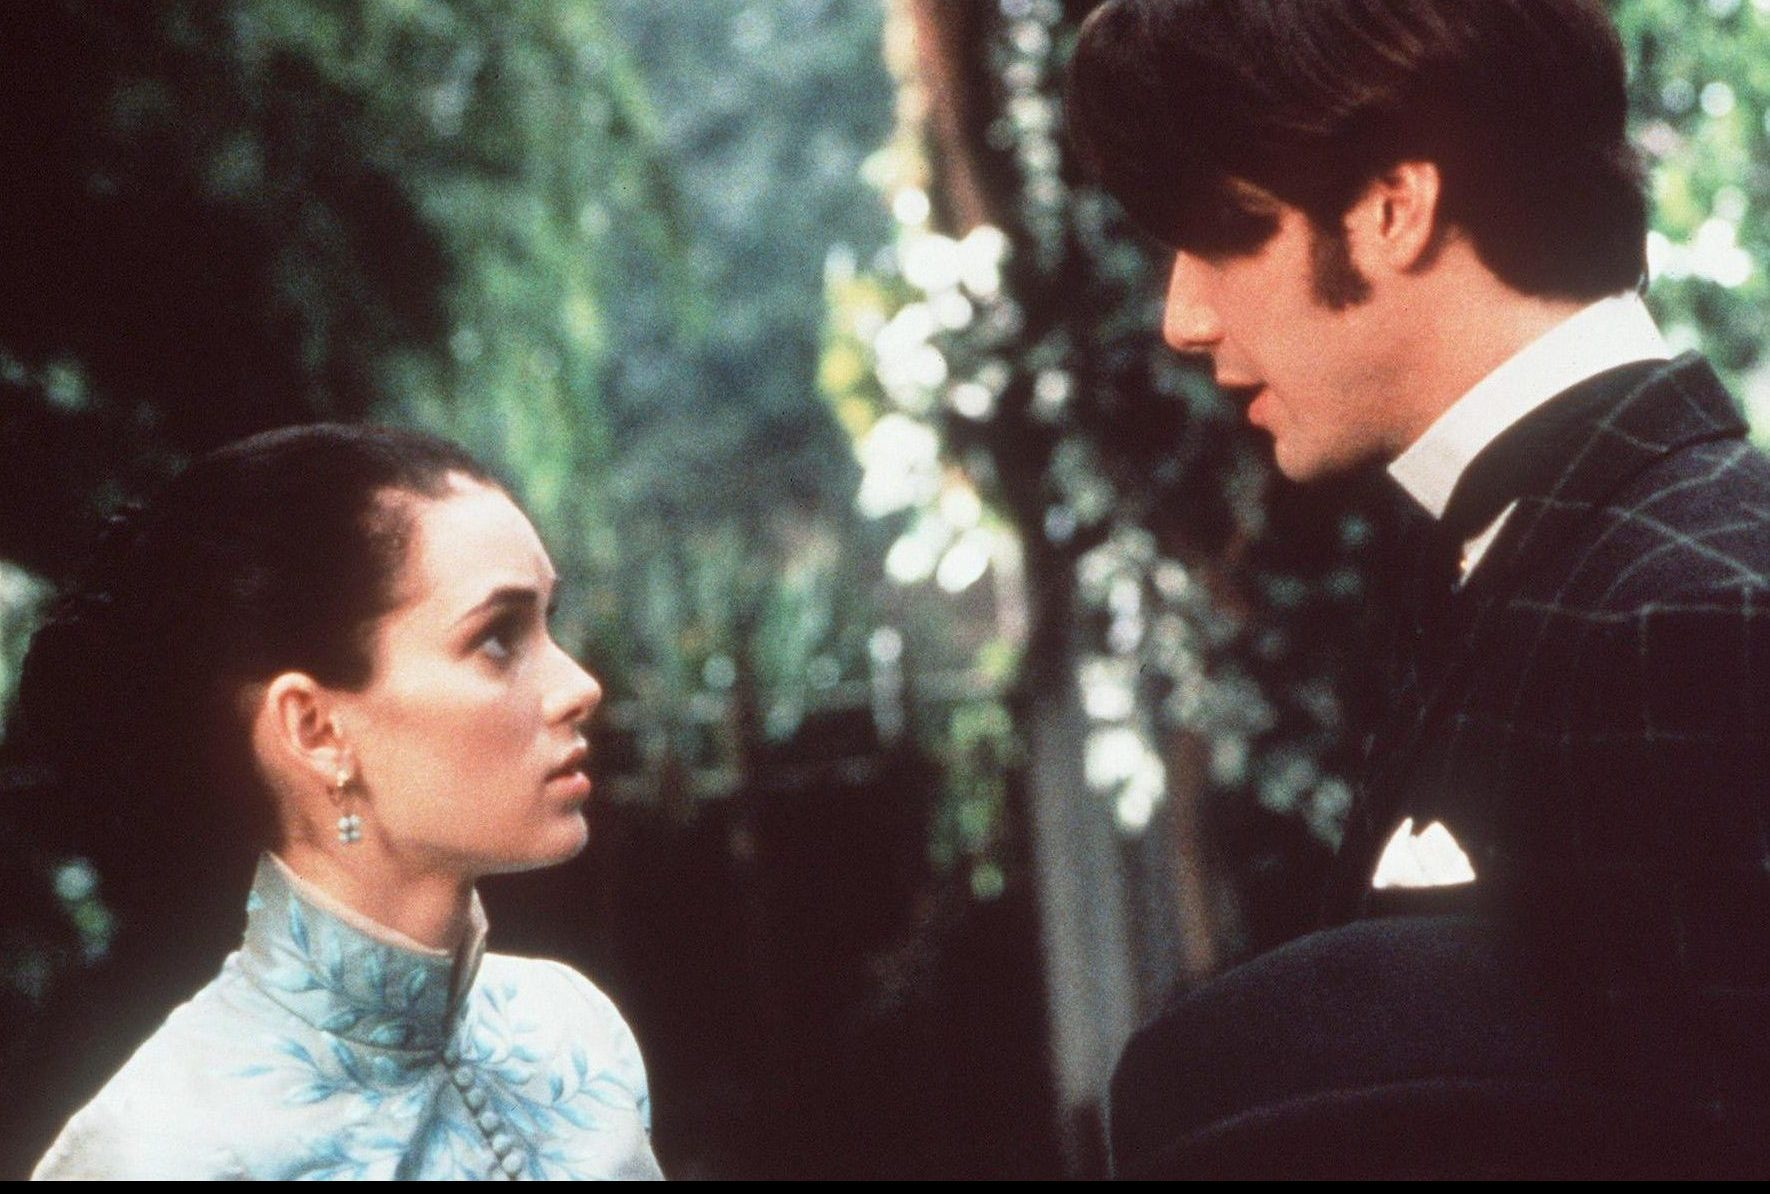 19 2 e1617289170458 20 Interesting Facts About Winona Ryder